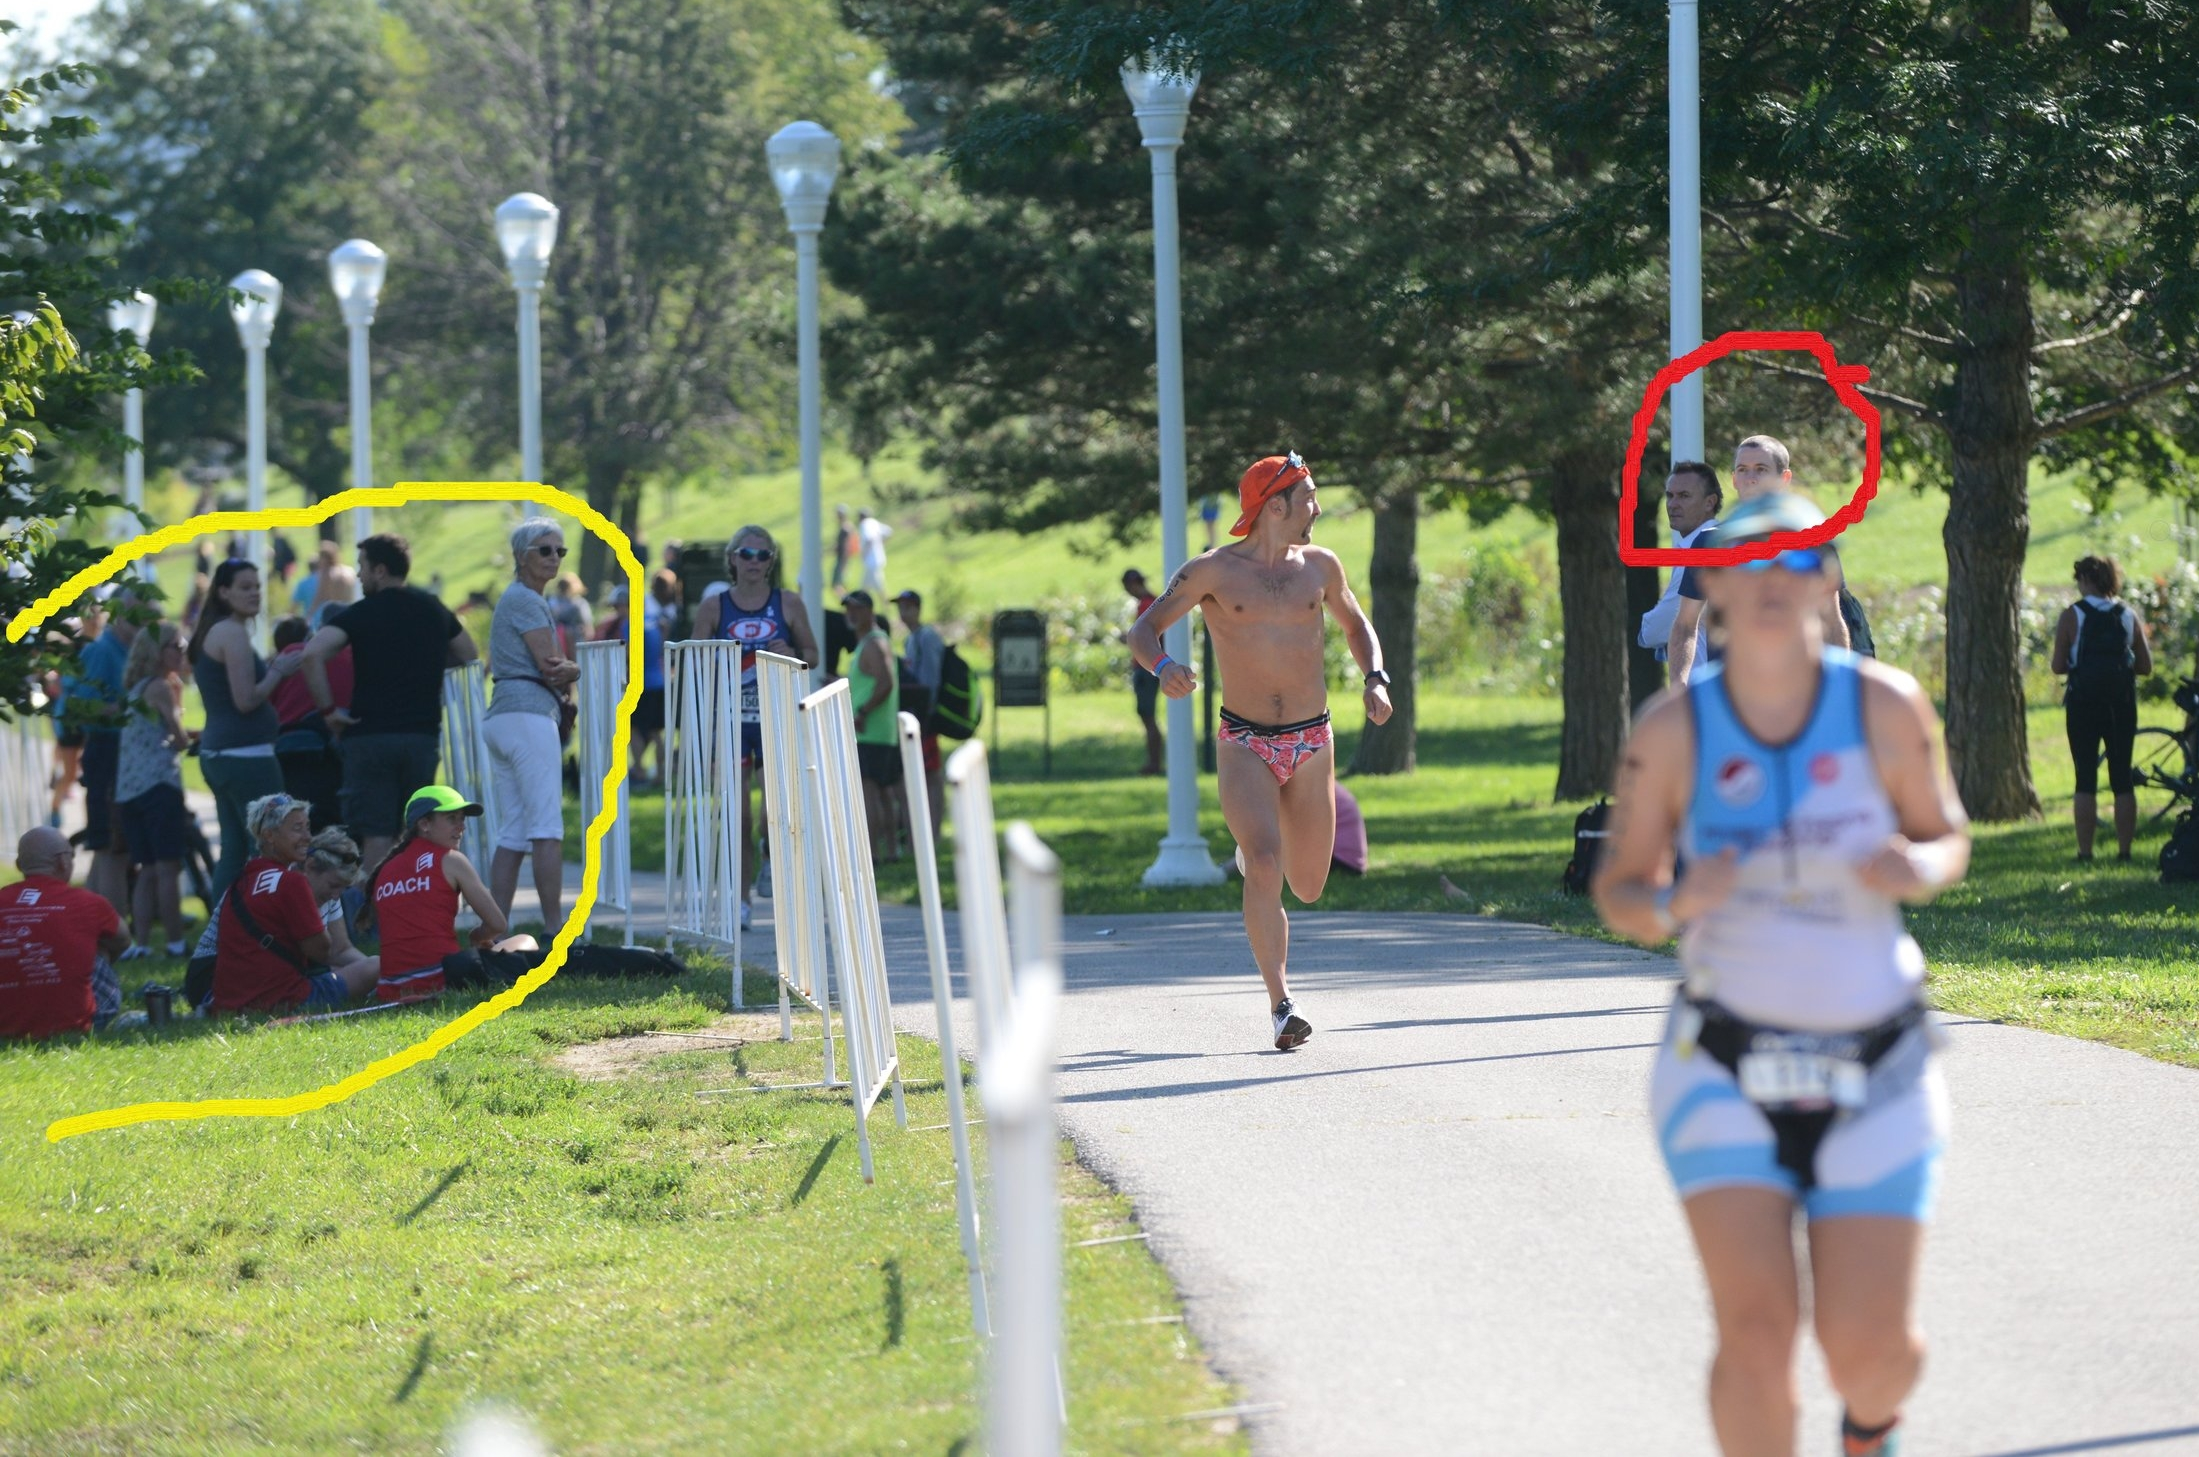 Arguably the best photo of the weekend. On the left (circled in yellow) you can see how the spectators in Cleveland couldn't keep their eyes off my nice firm buns and fruit filled speedo. On the right you see coach Jimmy telling me the life story of the kid in first place.